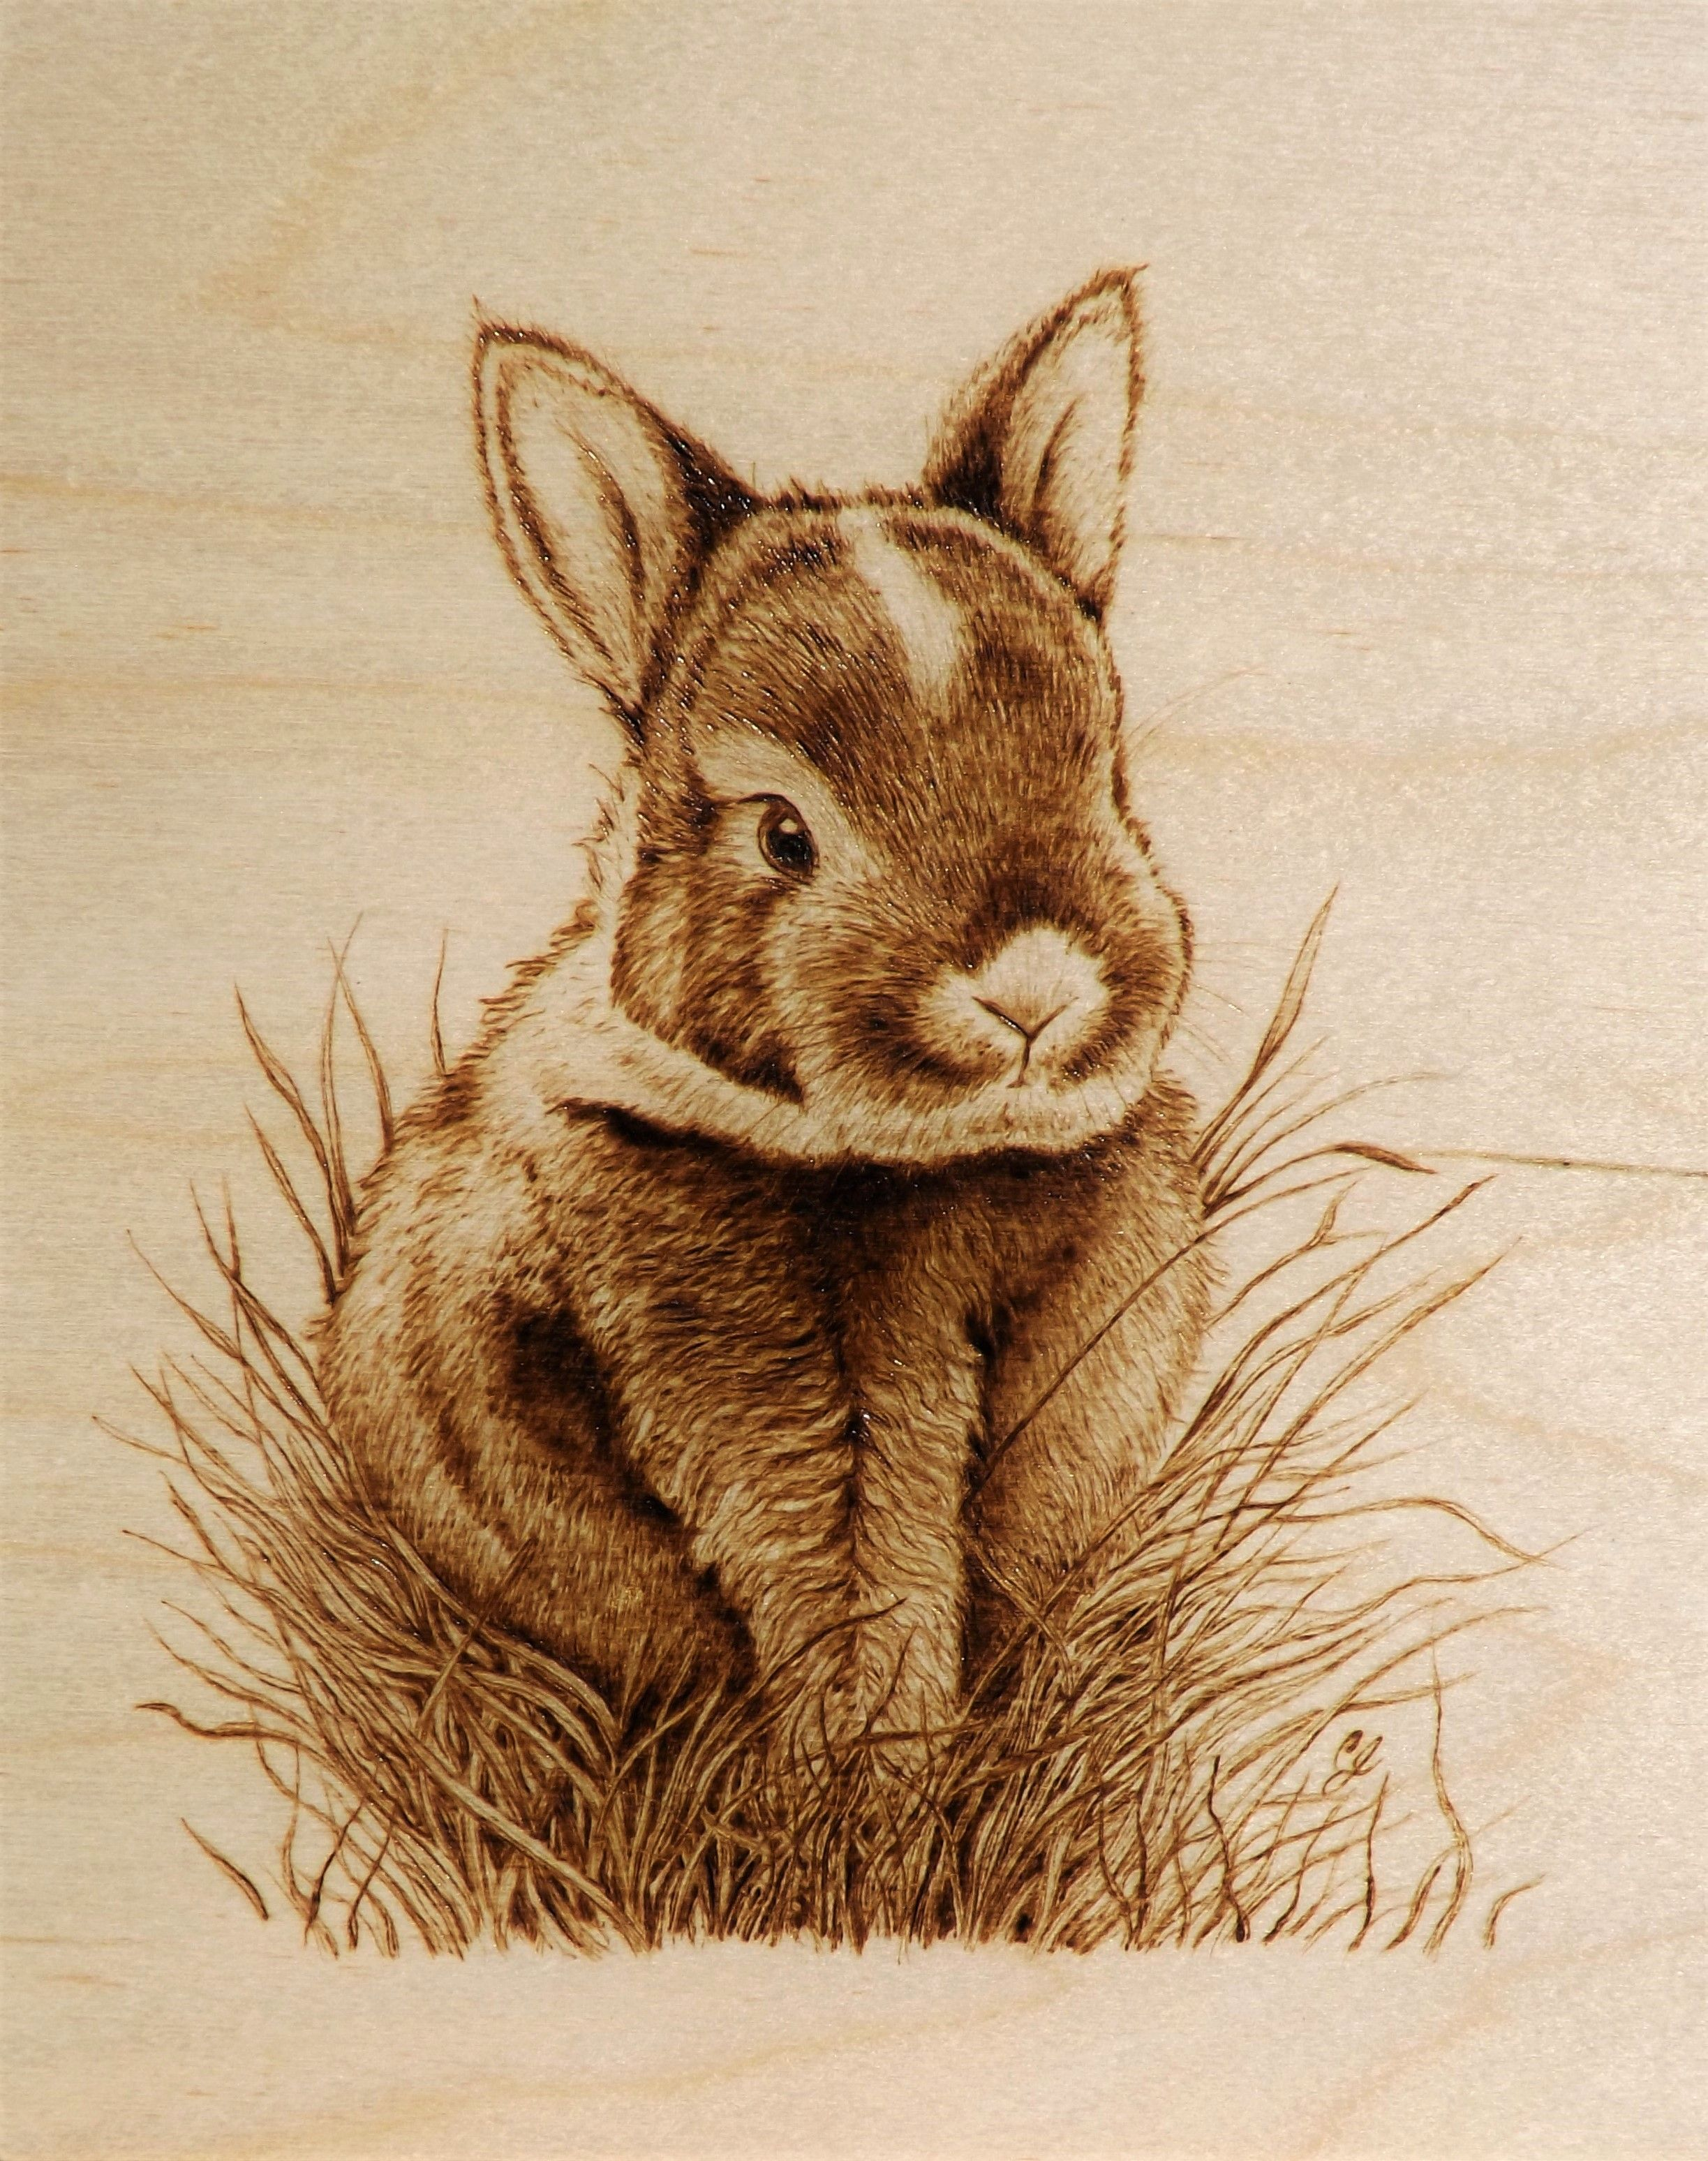 Best Foot Forward Little Bunny Rabbit In The Grass By Cara Jordan Pyrography Woodburning Wood Burning Patterns Stencil Wood Burning Art Pyrography